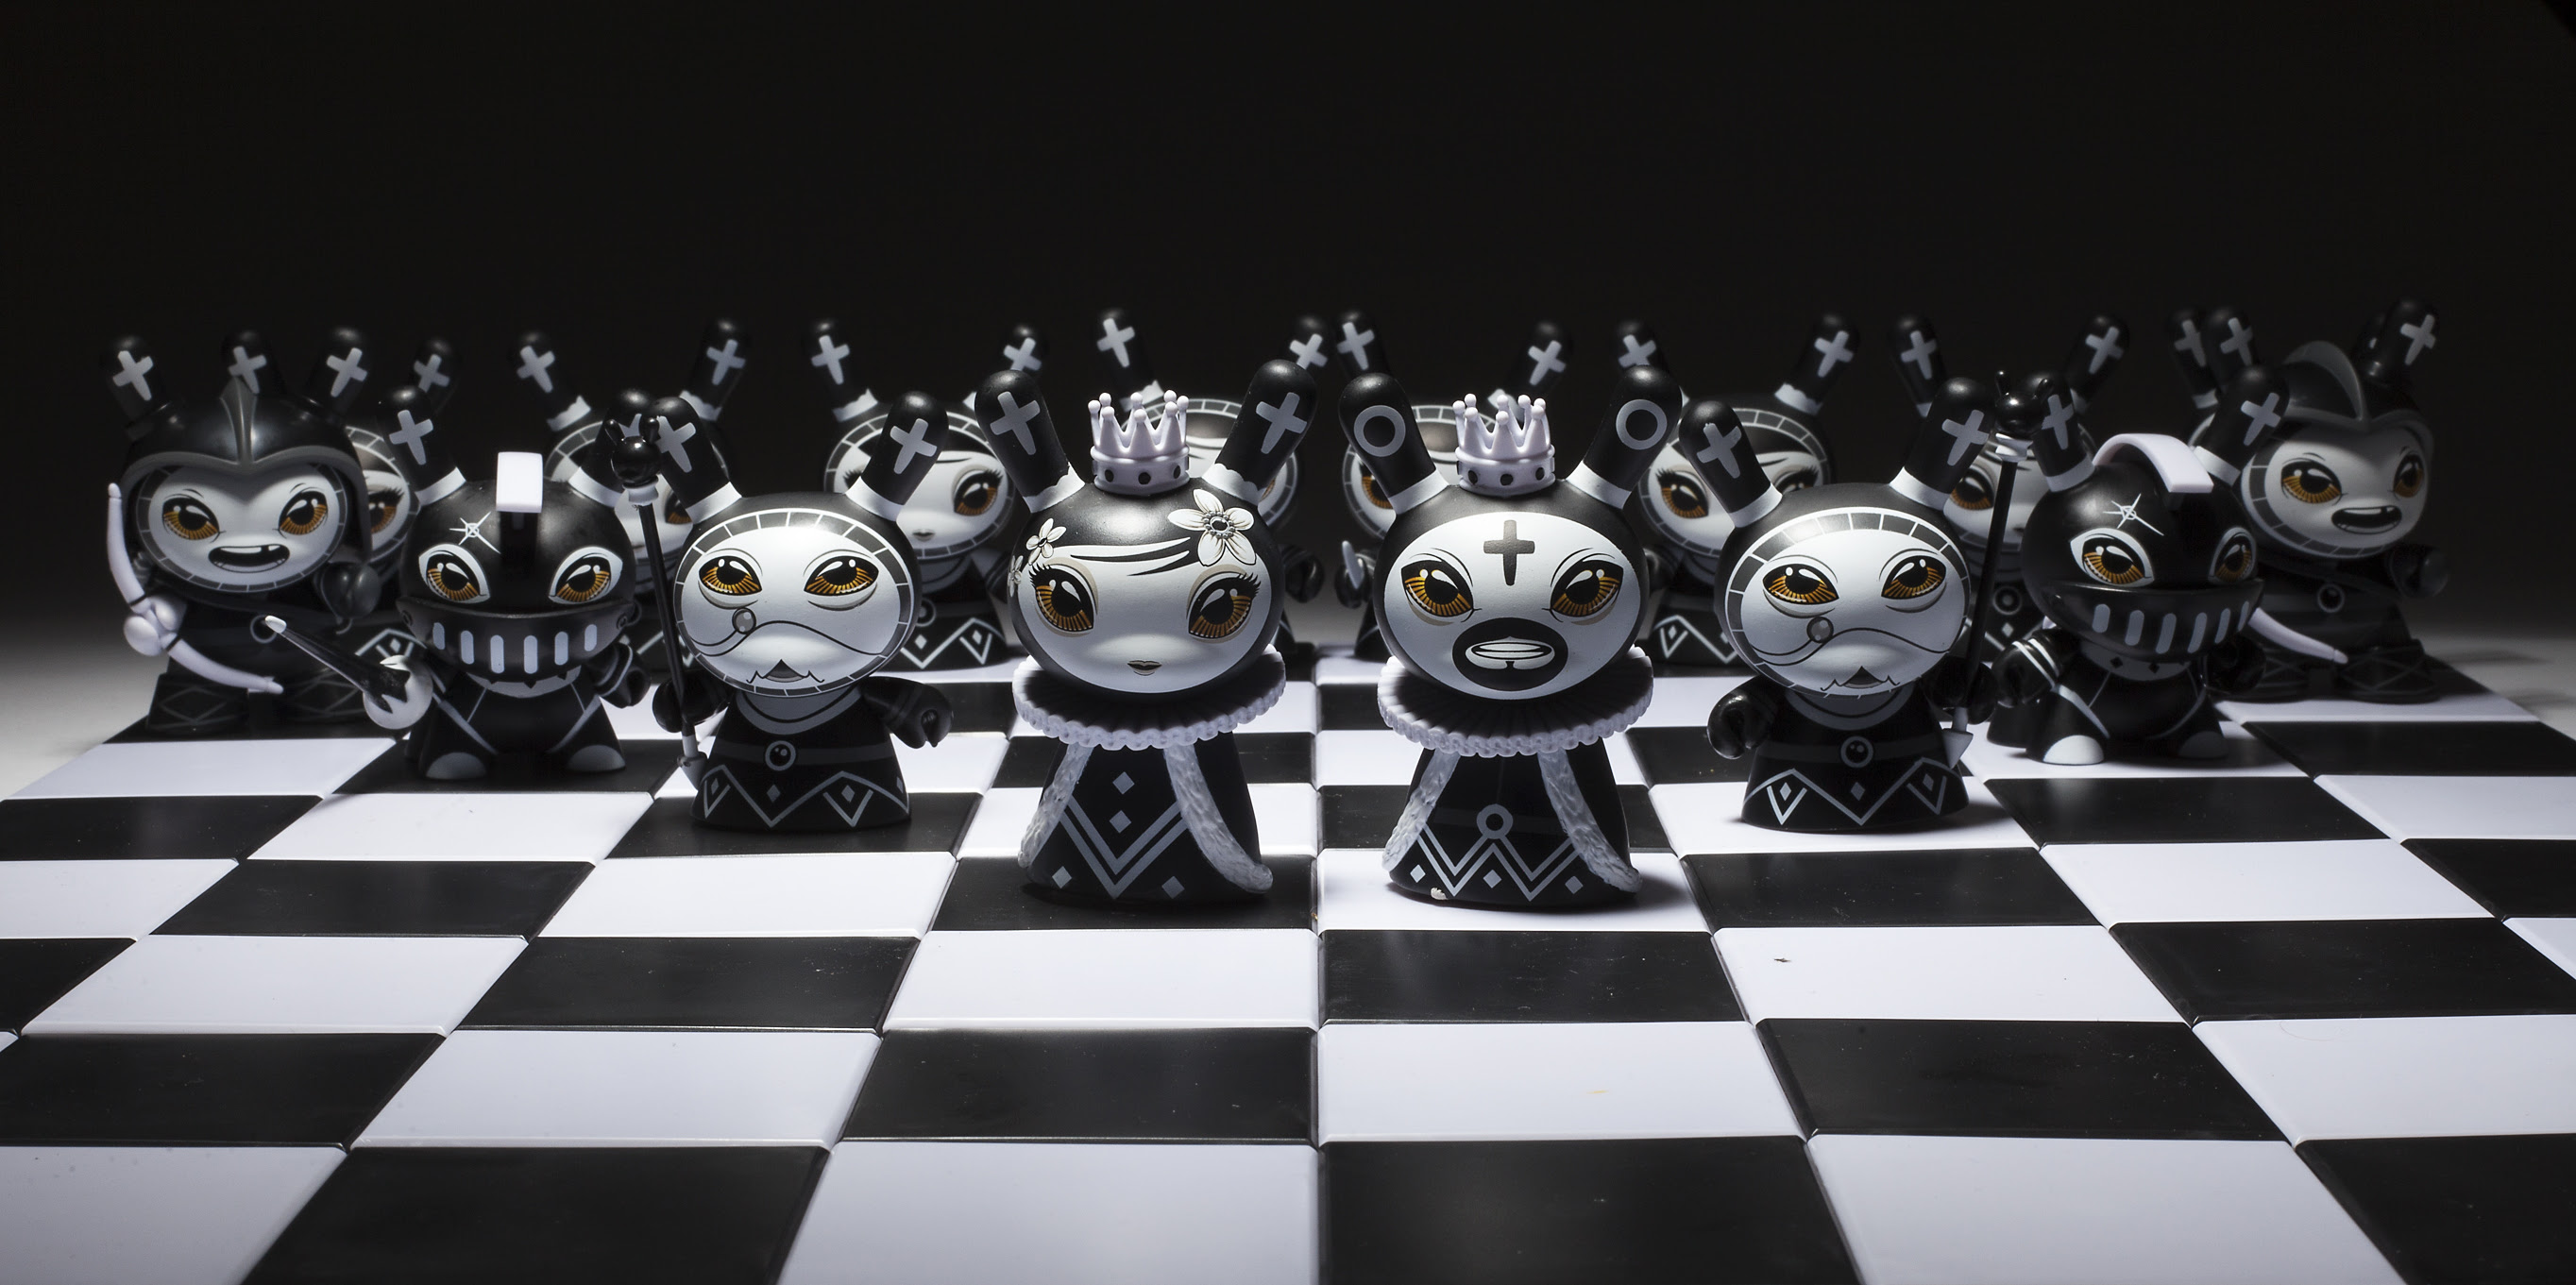 Otto Bjornik's Dunny Chess Set Series Is The Coolest Way To Play Chess   Bleeding Cool News And Rumors